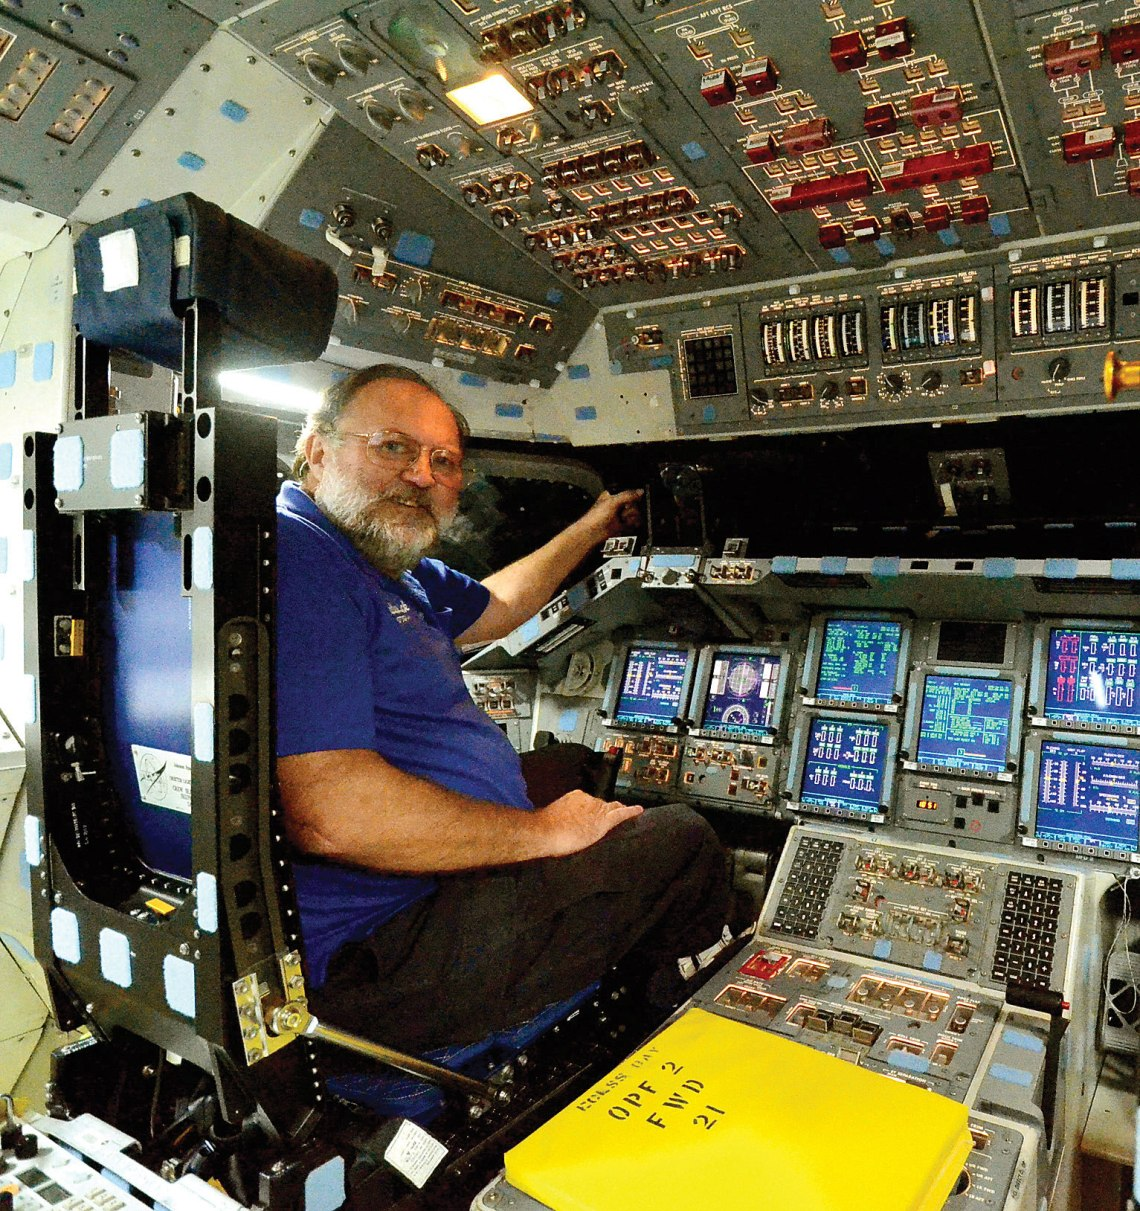 Julian sits on Endeavour's flight deck. Credit: Julian Leek